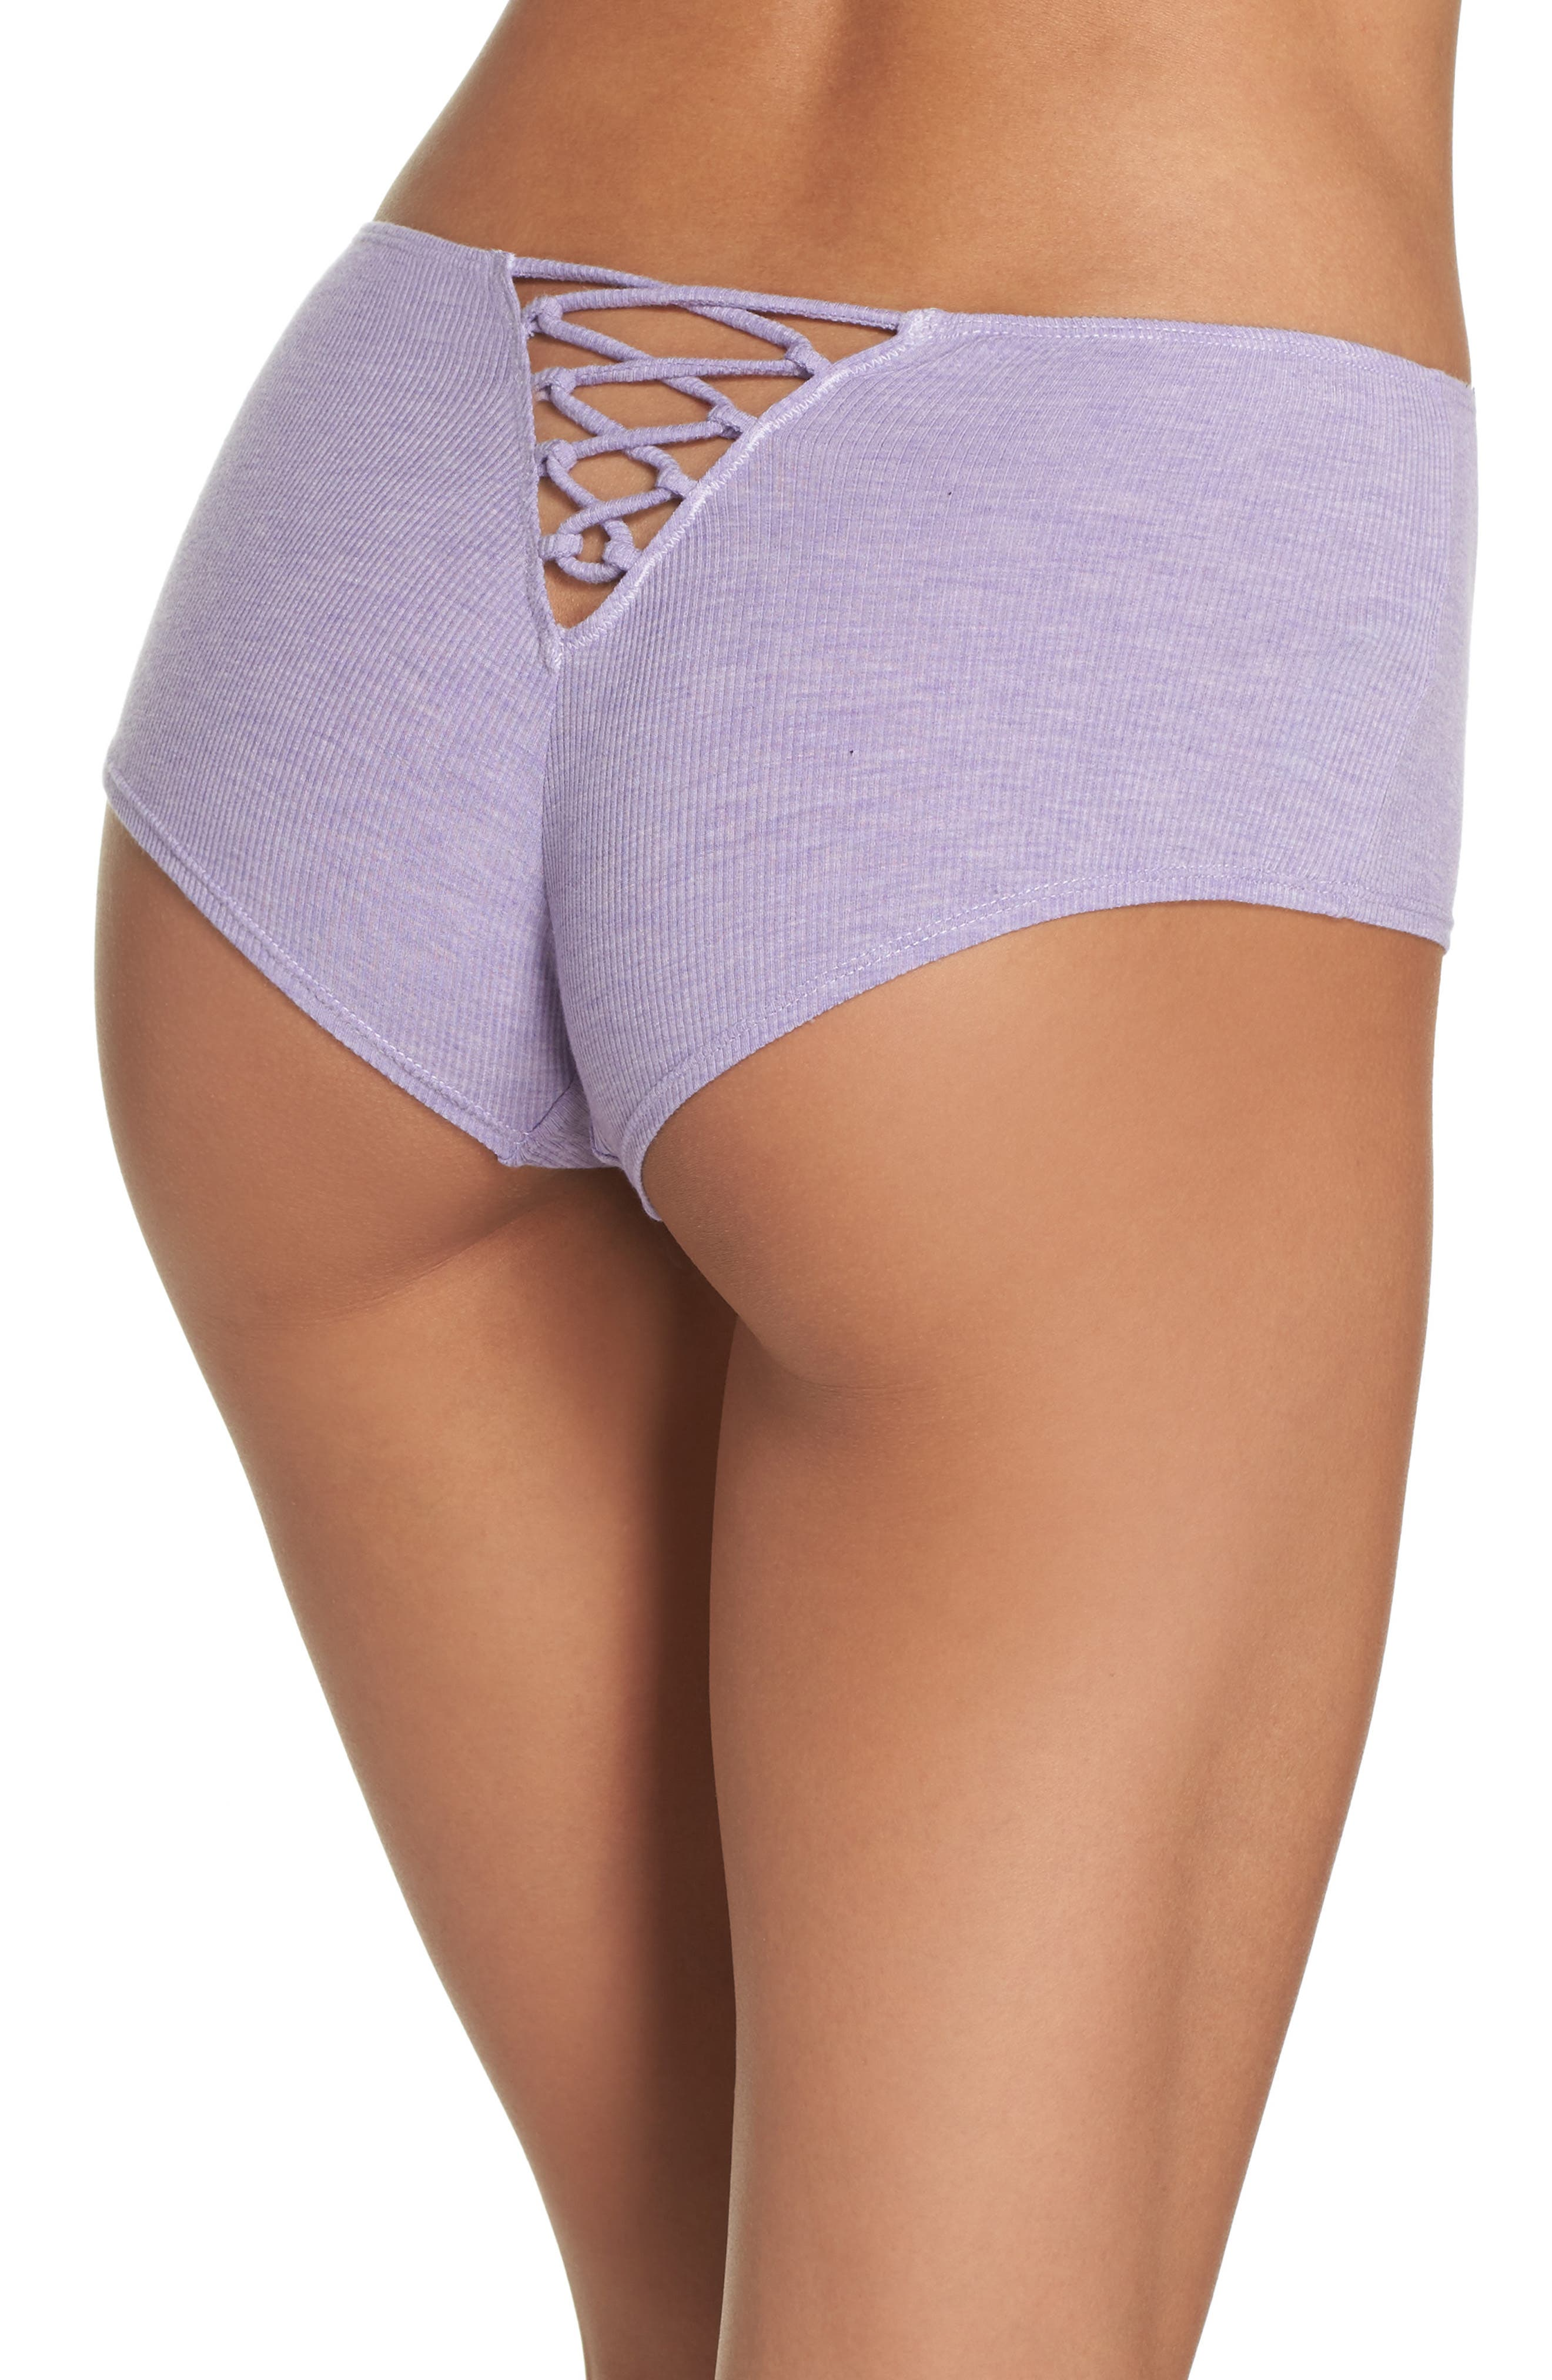 Honeydew Intimates Tie Back Hipster Panties (4 for $30)